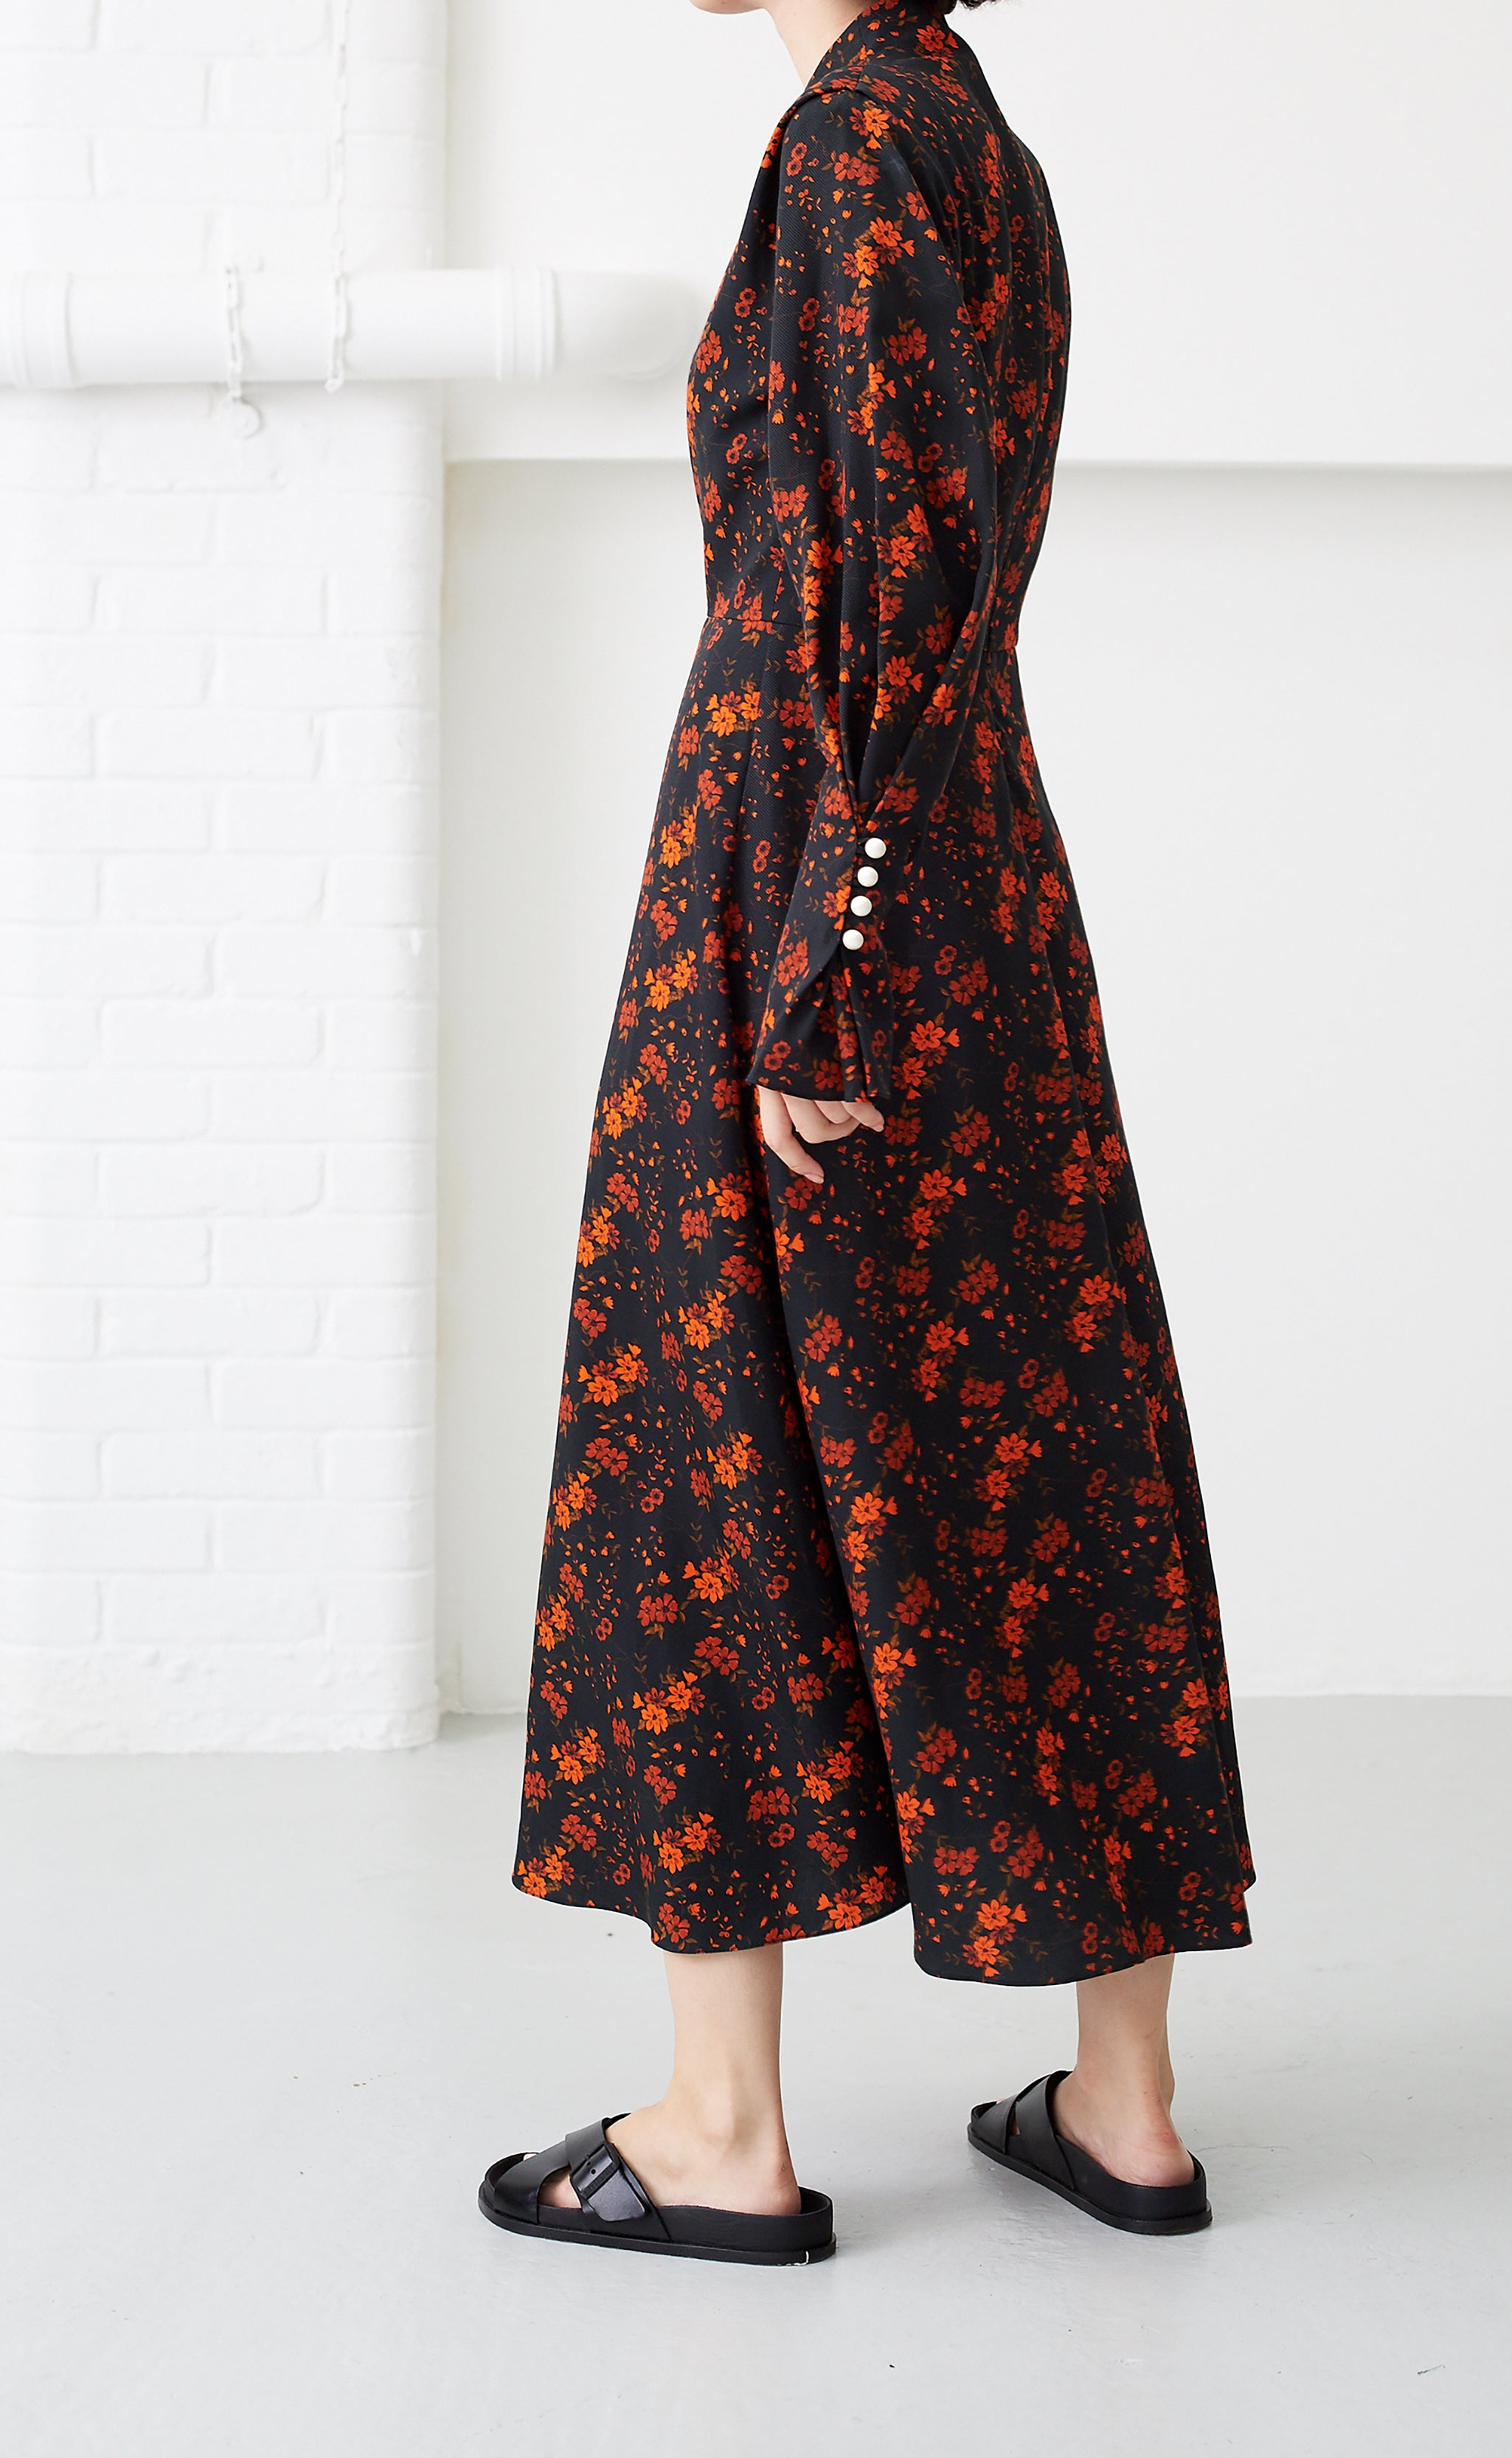 MICHELLE NOIR BLOSSOM DRESS